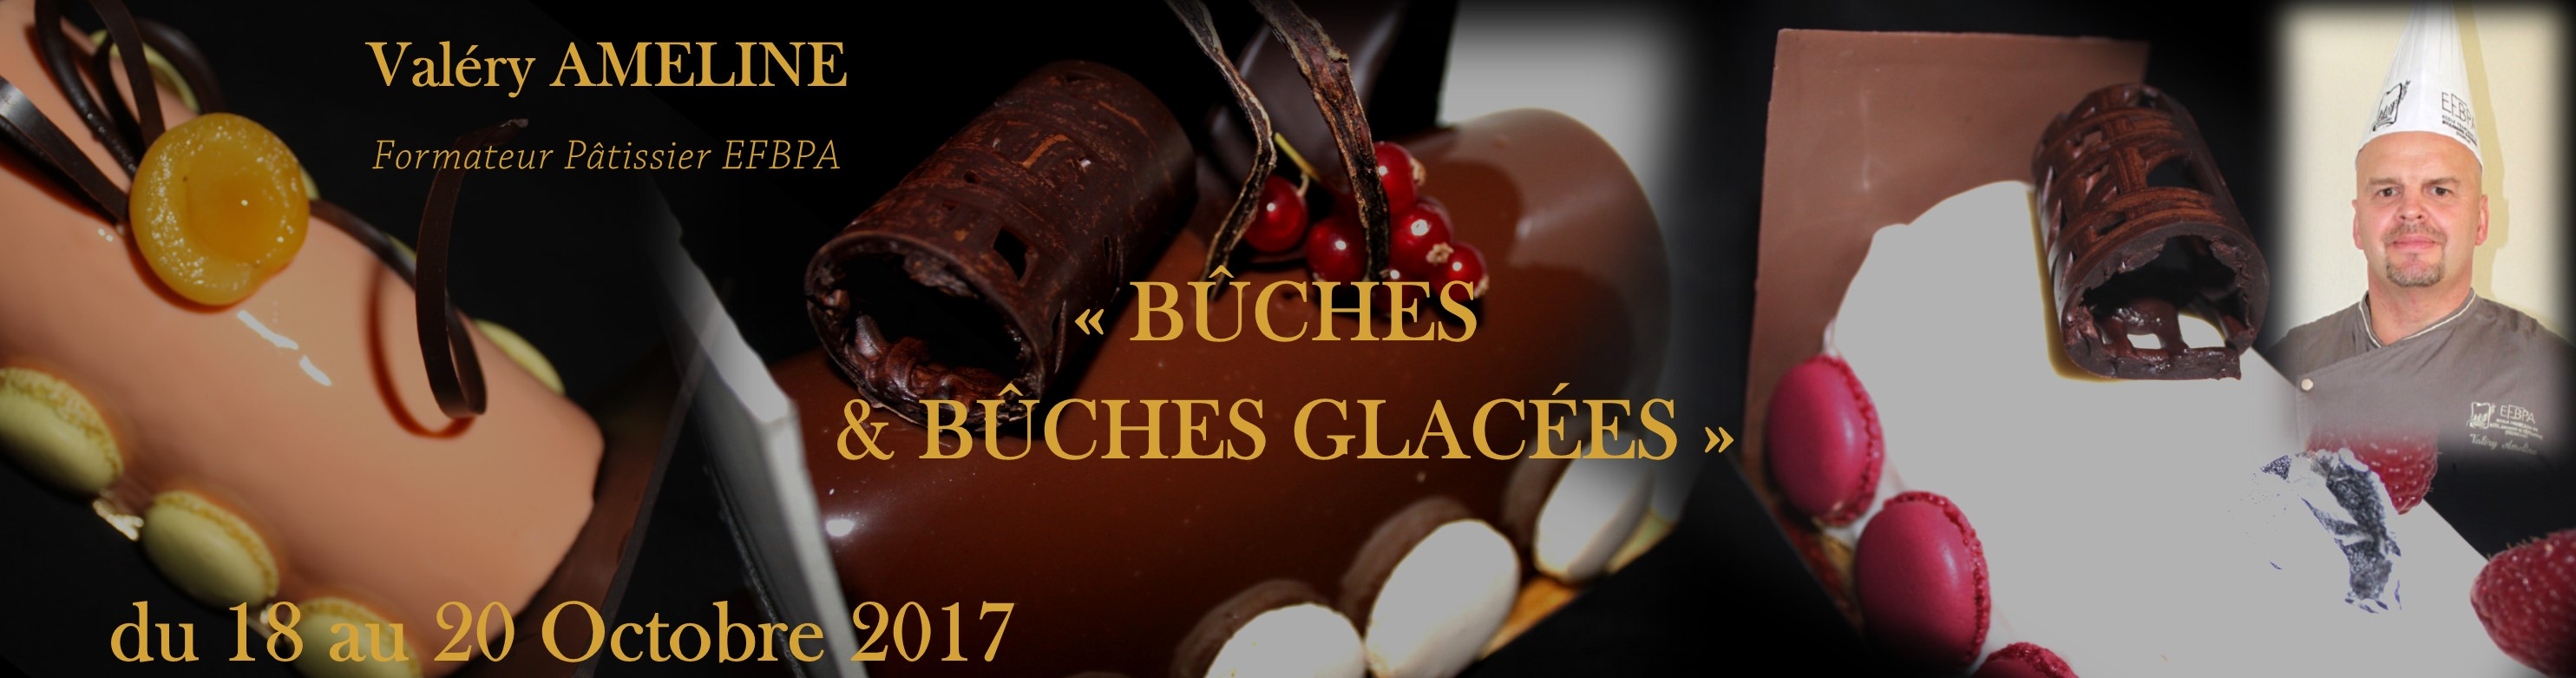 11-BUCHES-ET-BUCHES-GALCEES-